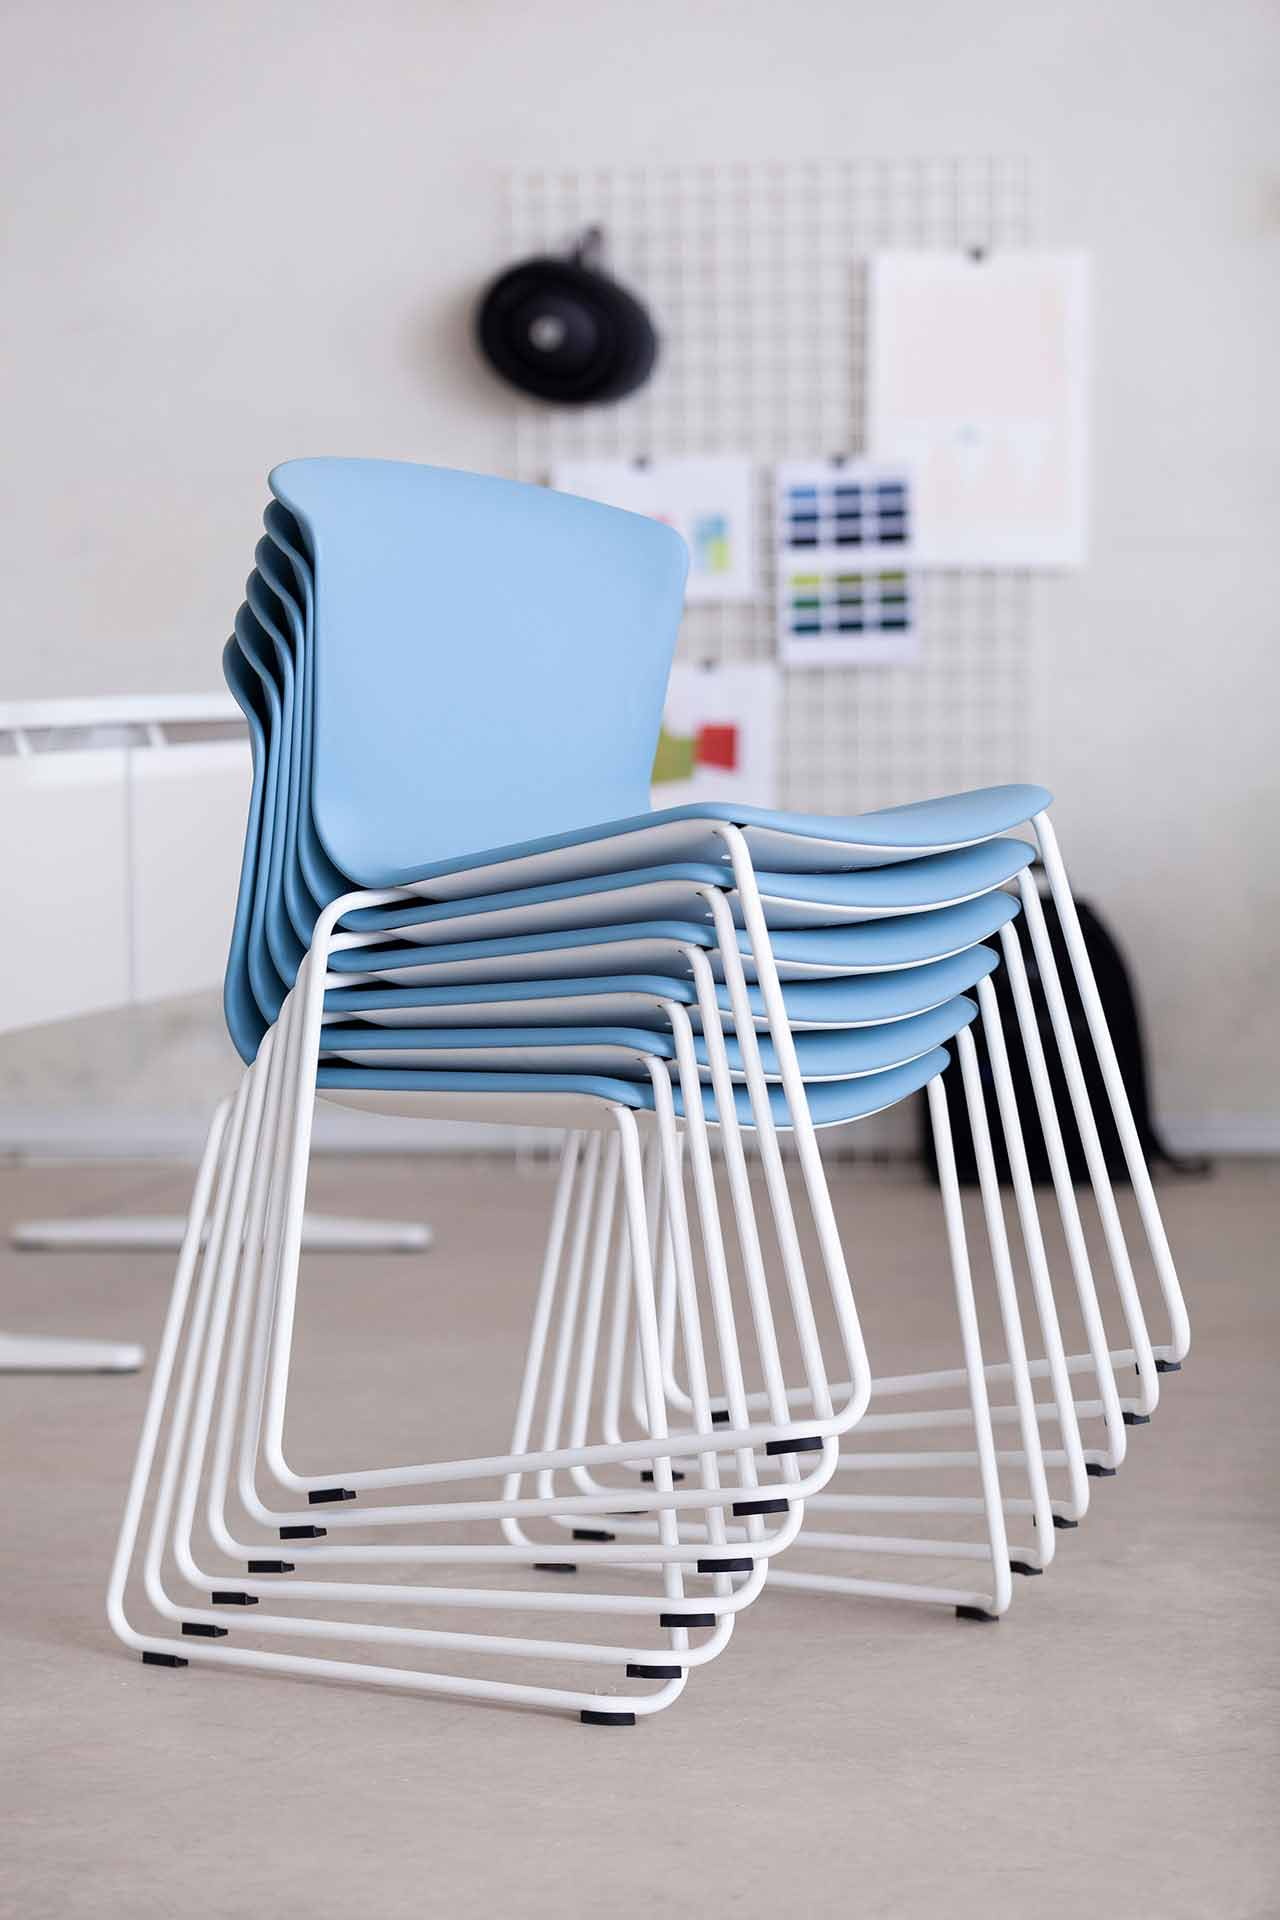 chair whass blue backrest armless stackable light weight assertive meeting appealing design variable functional efficient support elegant masof actiu